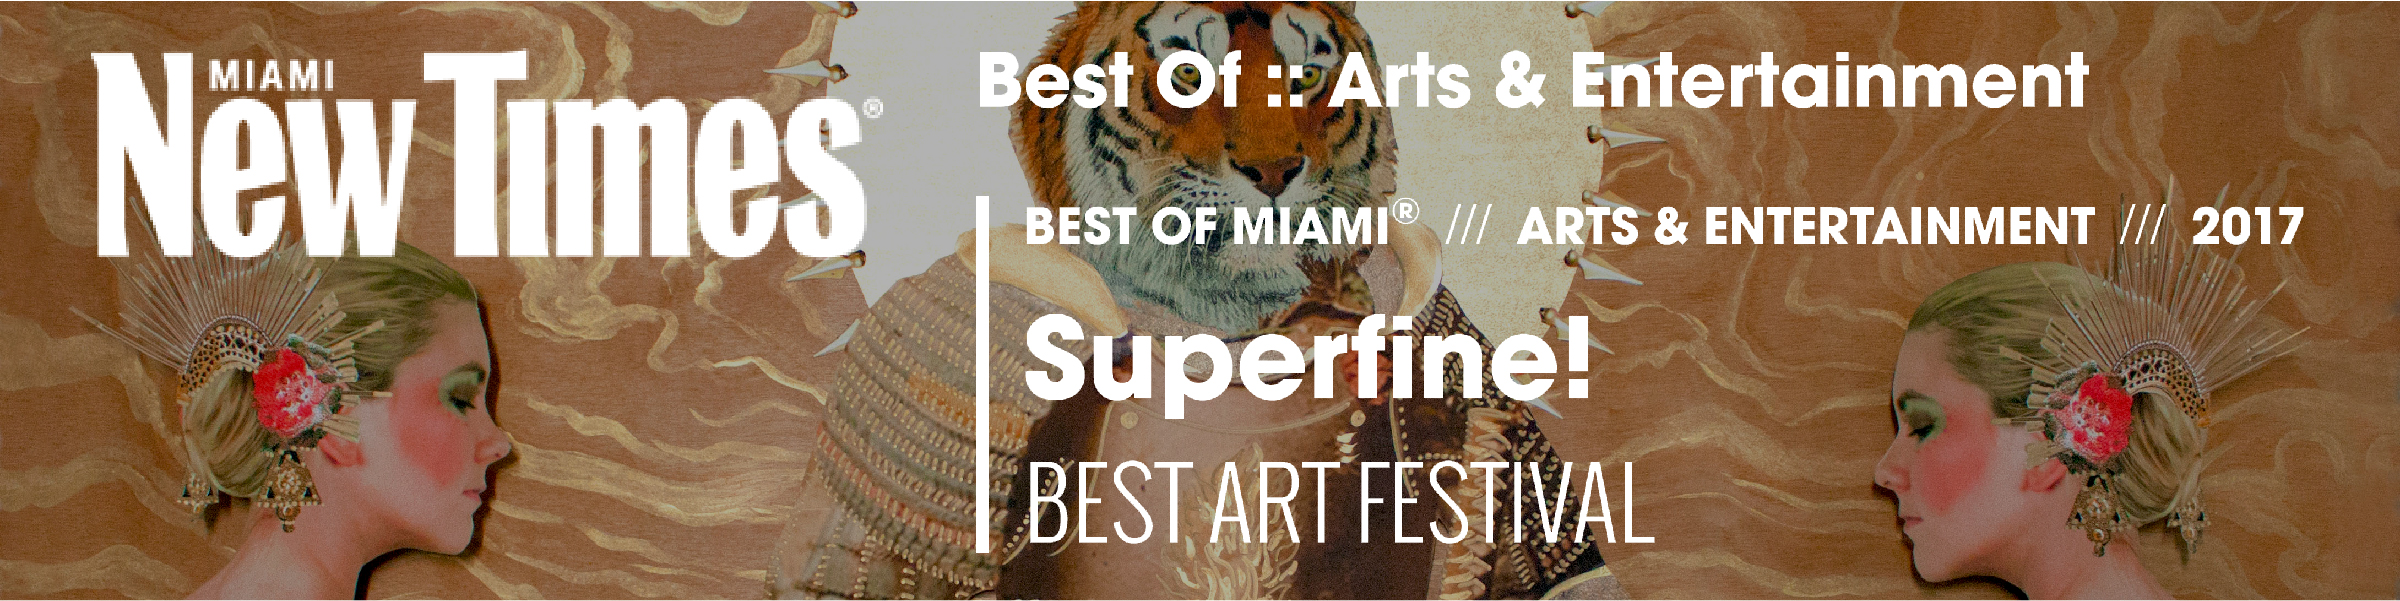 """""""Art Basel and Miami Art Week, at heart, are a rich person's playground, full of white tents housing bajillion-dollar works of art... But then Superfine! hit the scene.""""  - Miami New Times,6.13.17"""